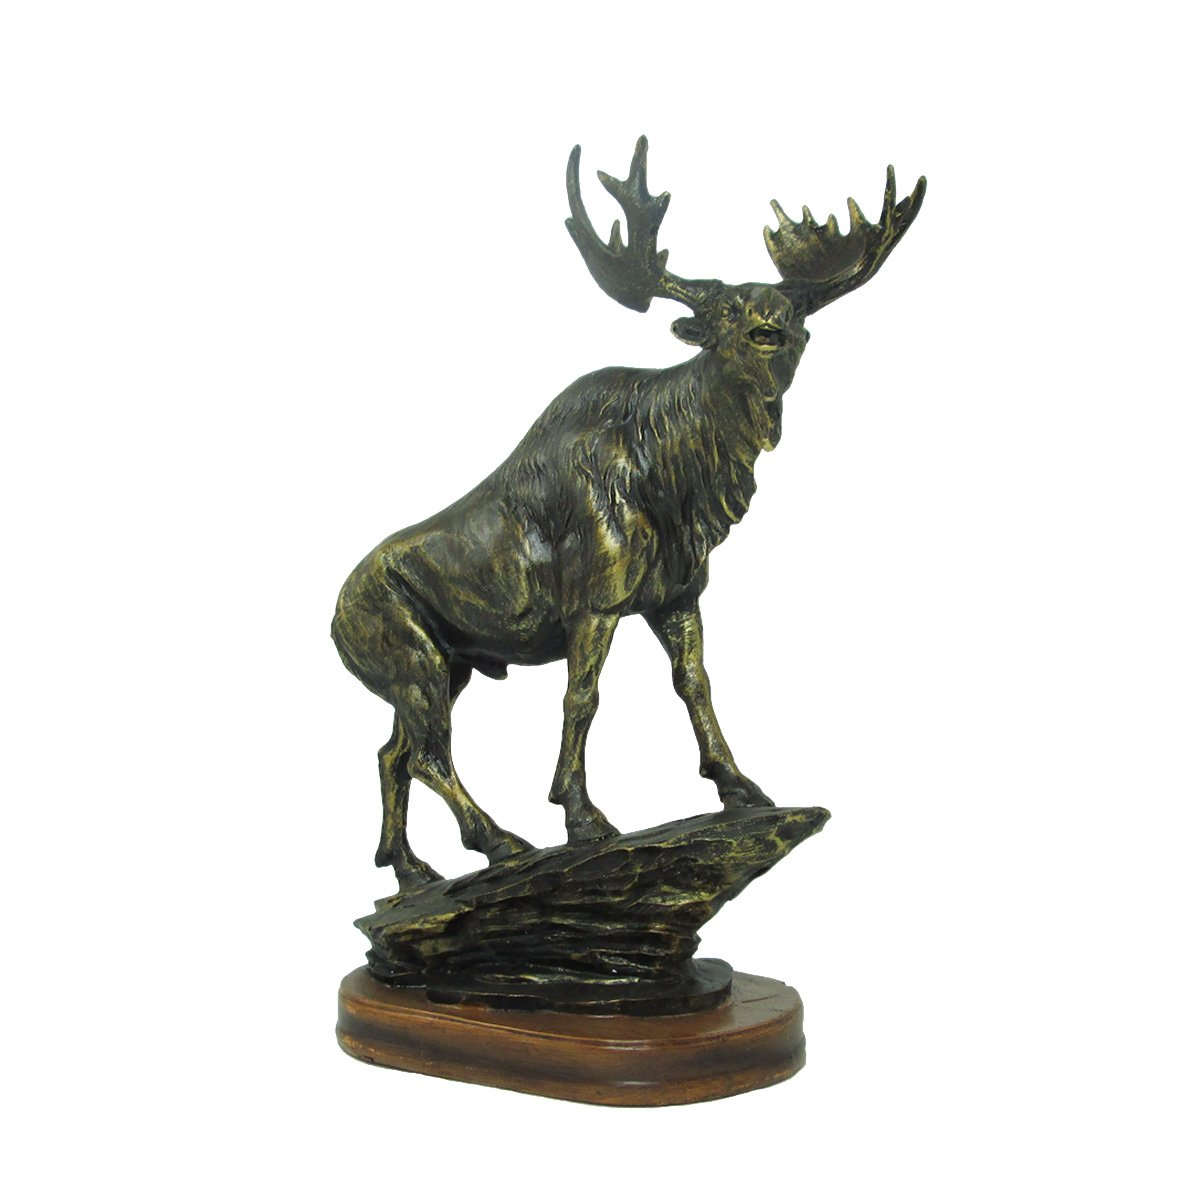 Bronzed Animal Collection Standing Moose with Wooden Base Figurine